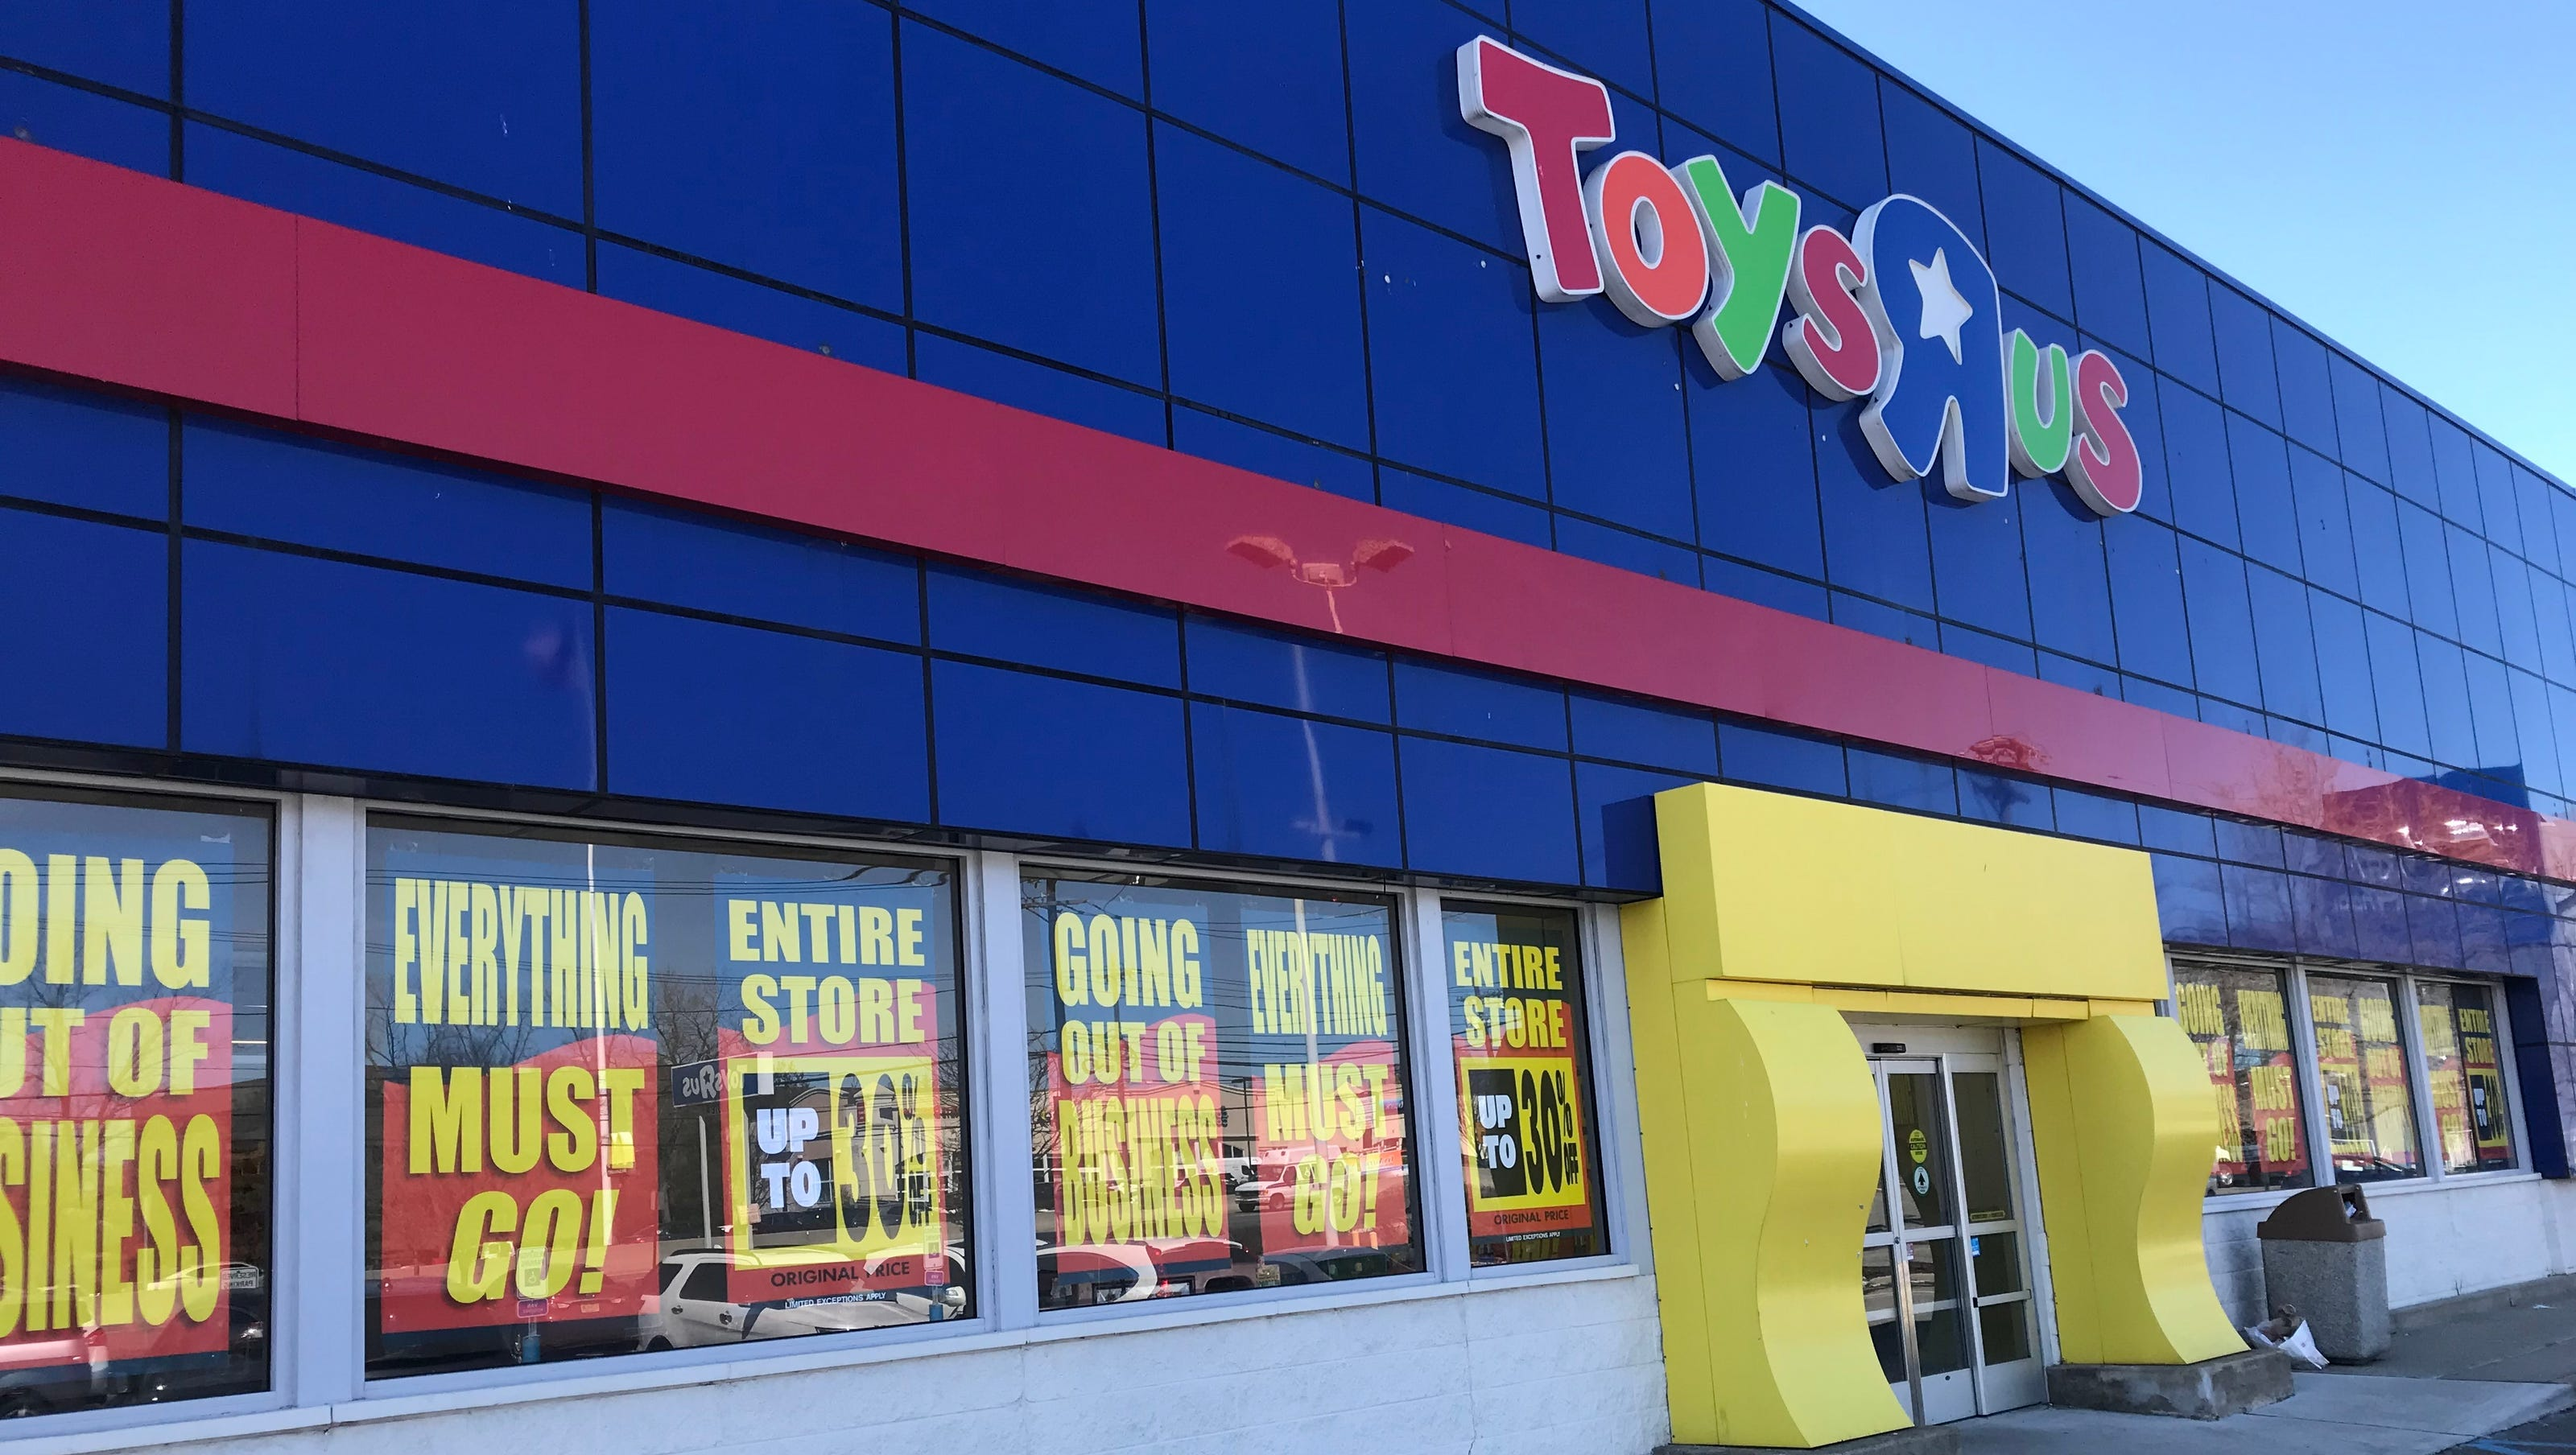 Furniture chain could replace Paramus Toys R US in lease auction